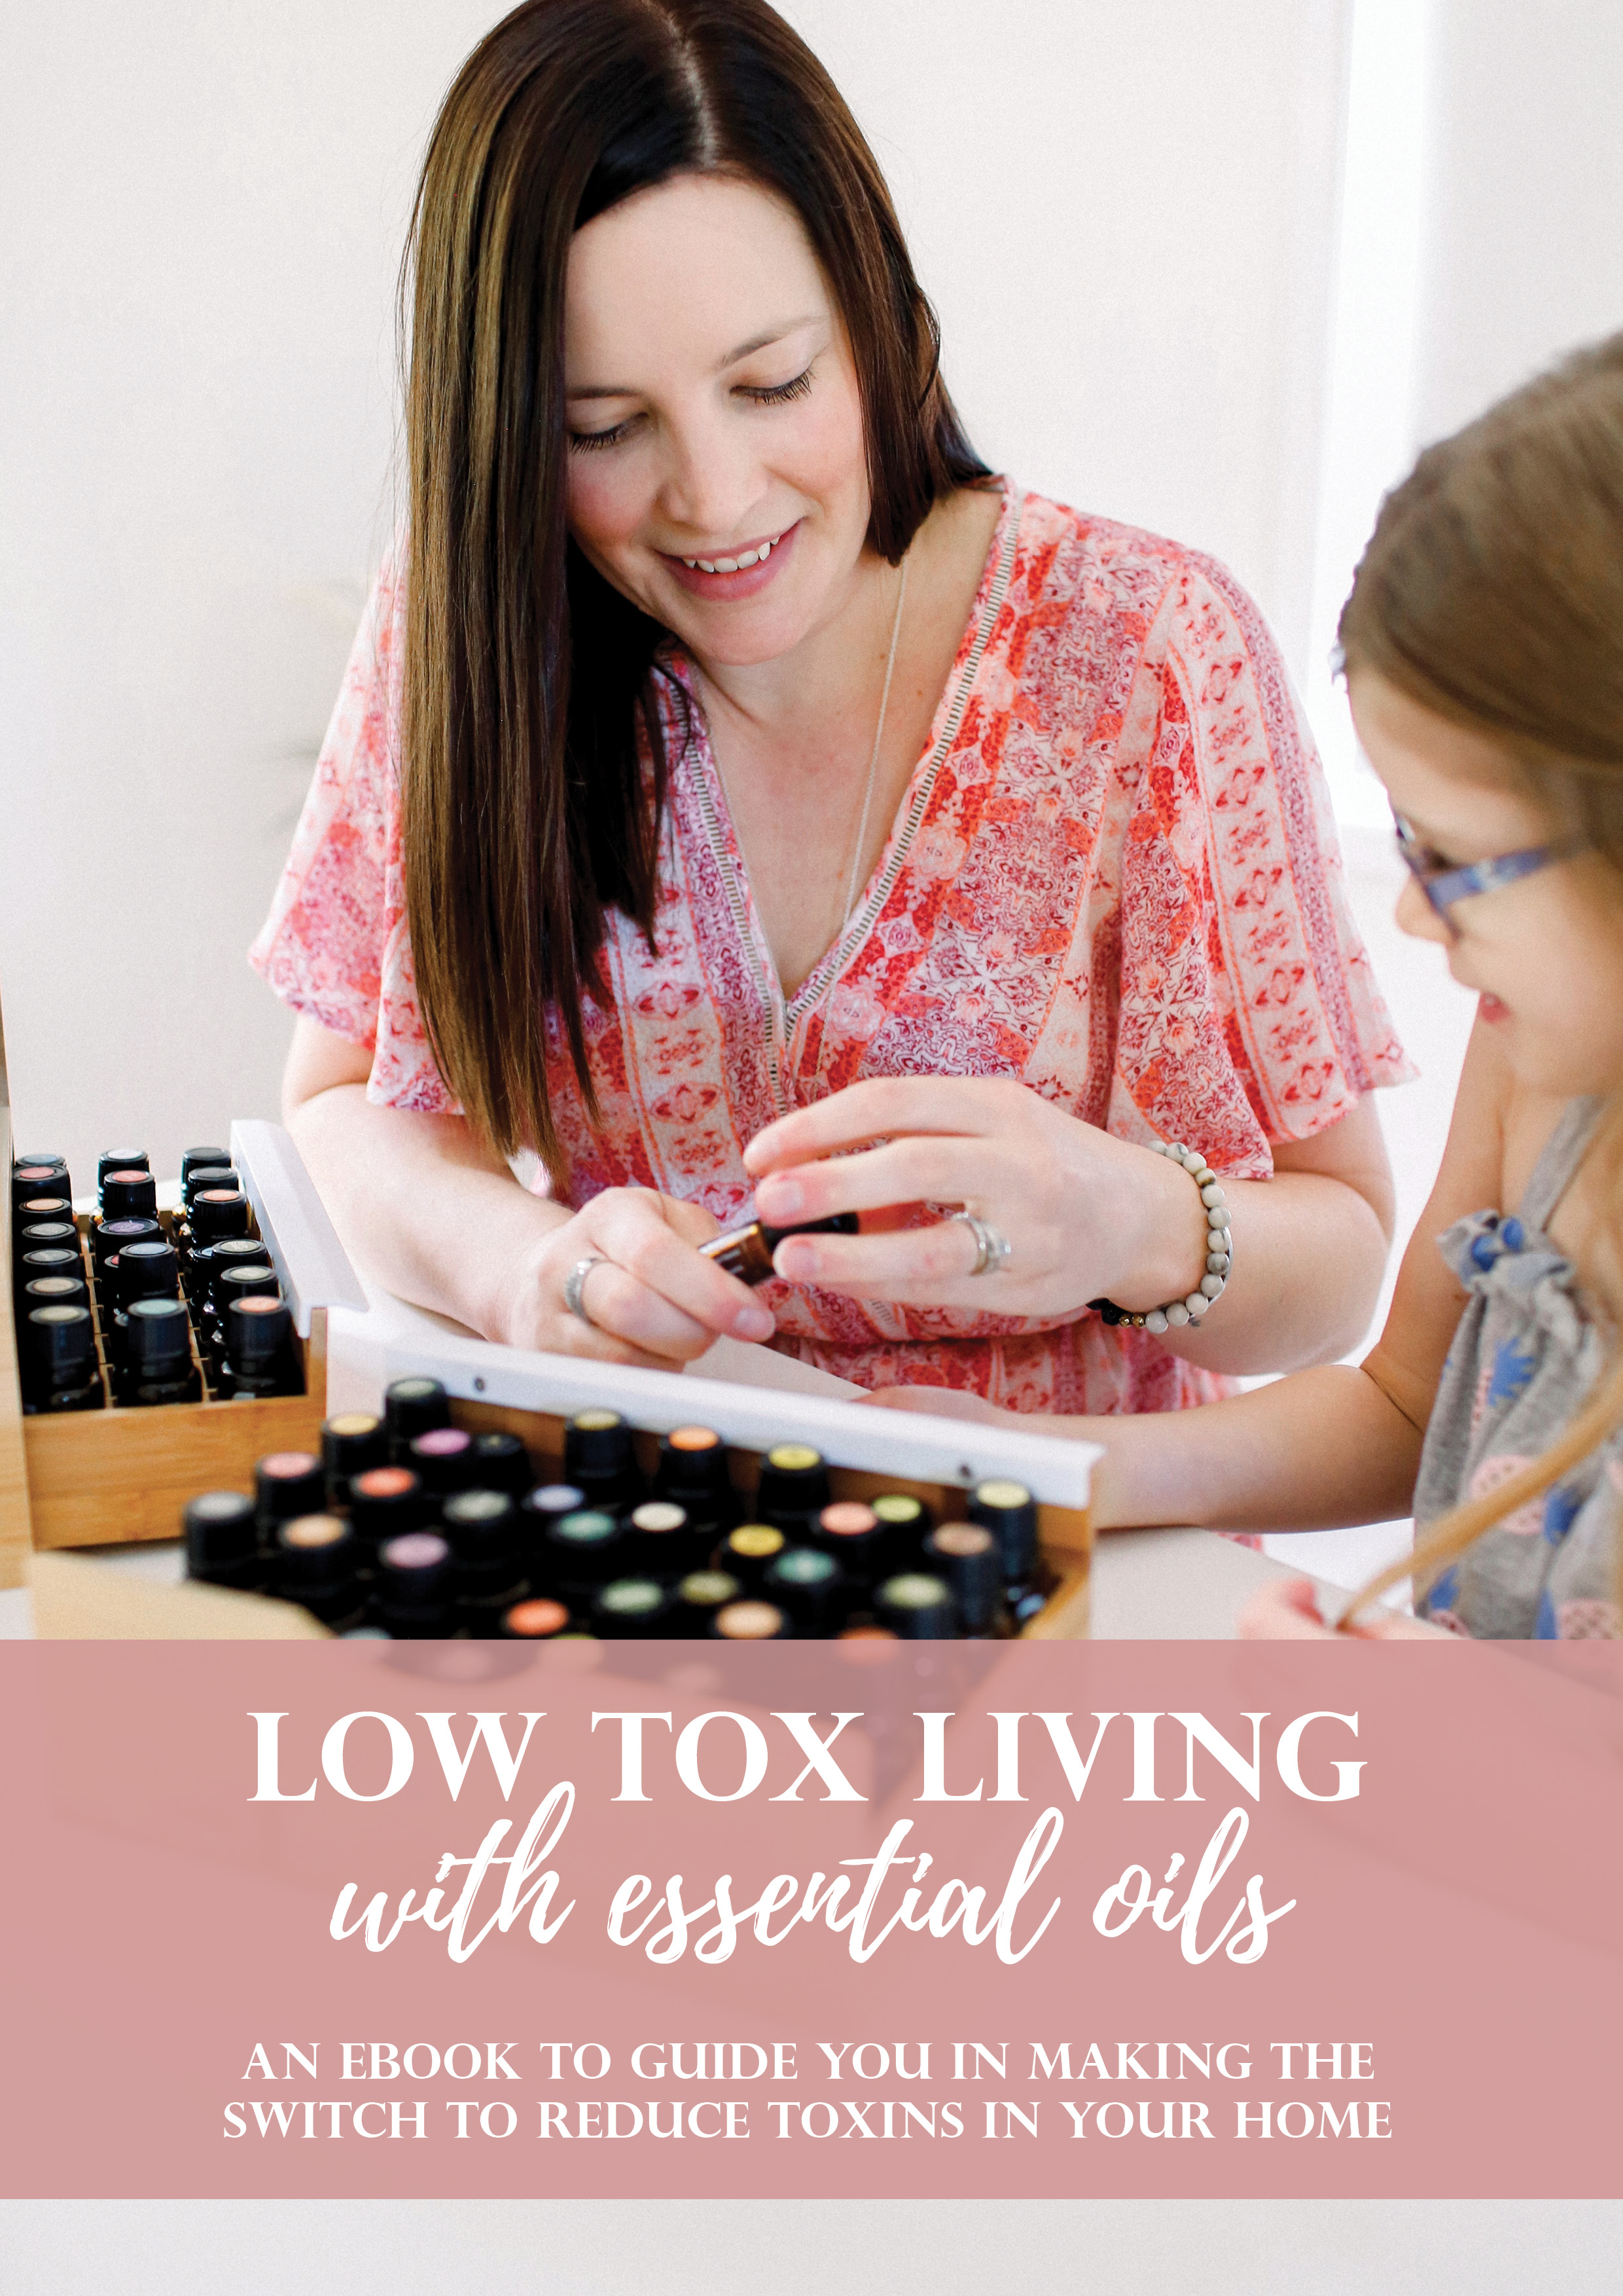 Low tox living with essential oils ebook cover.jpg